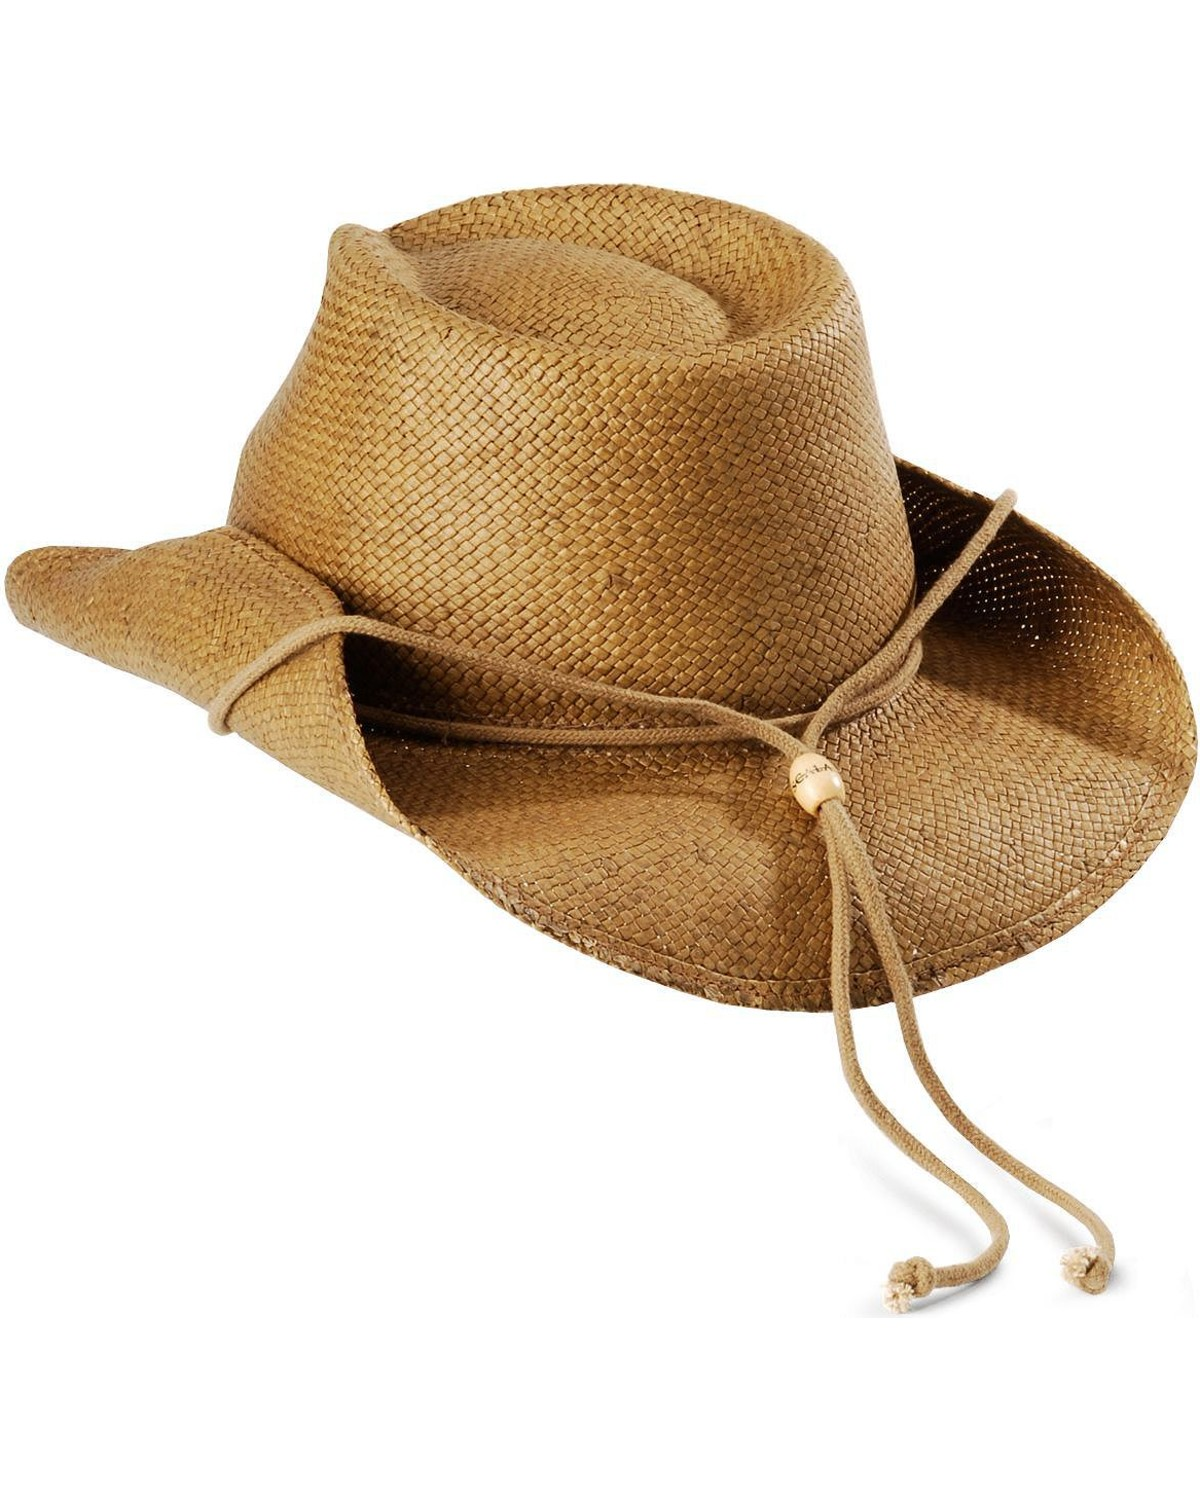 Straw Cowboy Hats Cheap - Hat HD Image Ukjugs.Org 6c4157840979